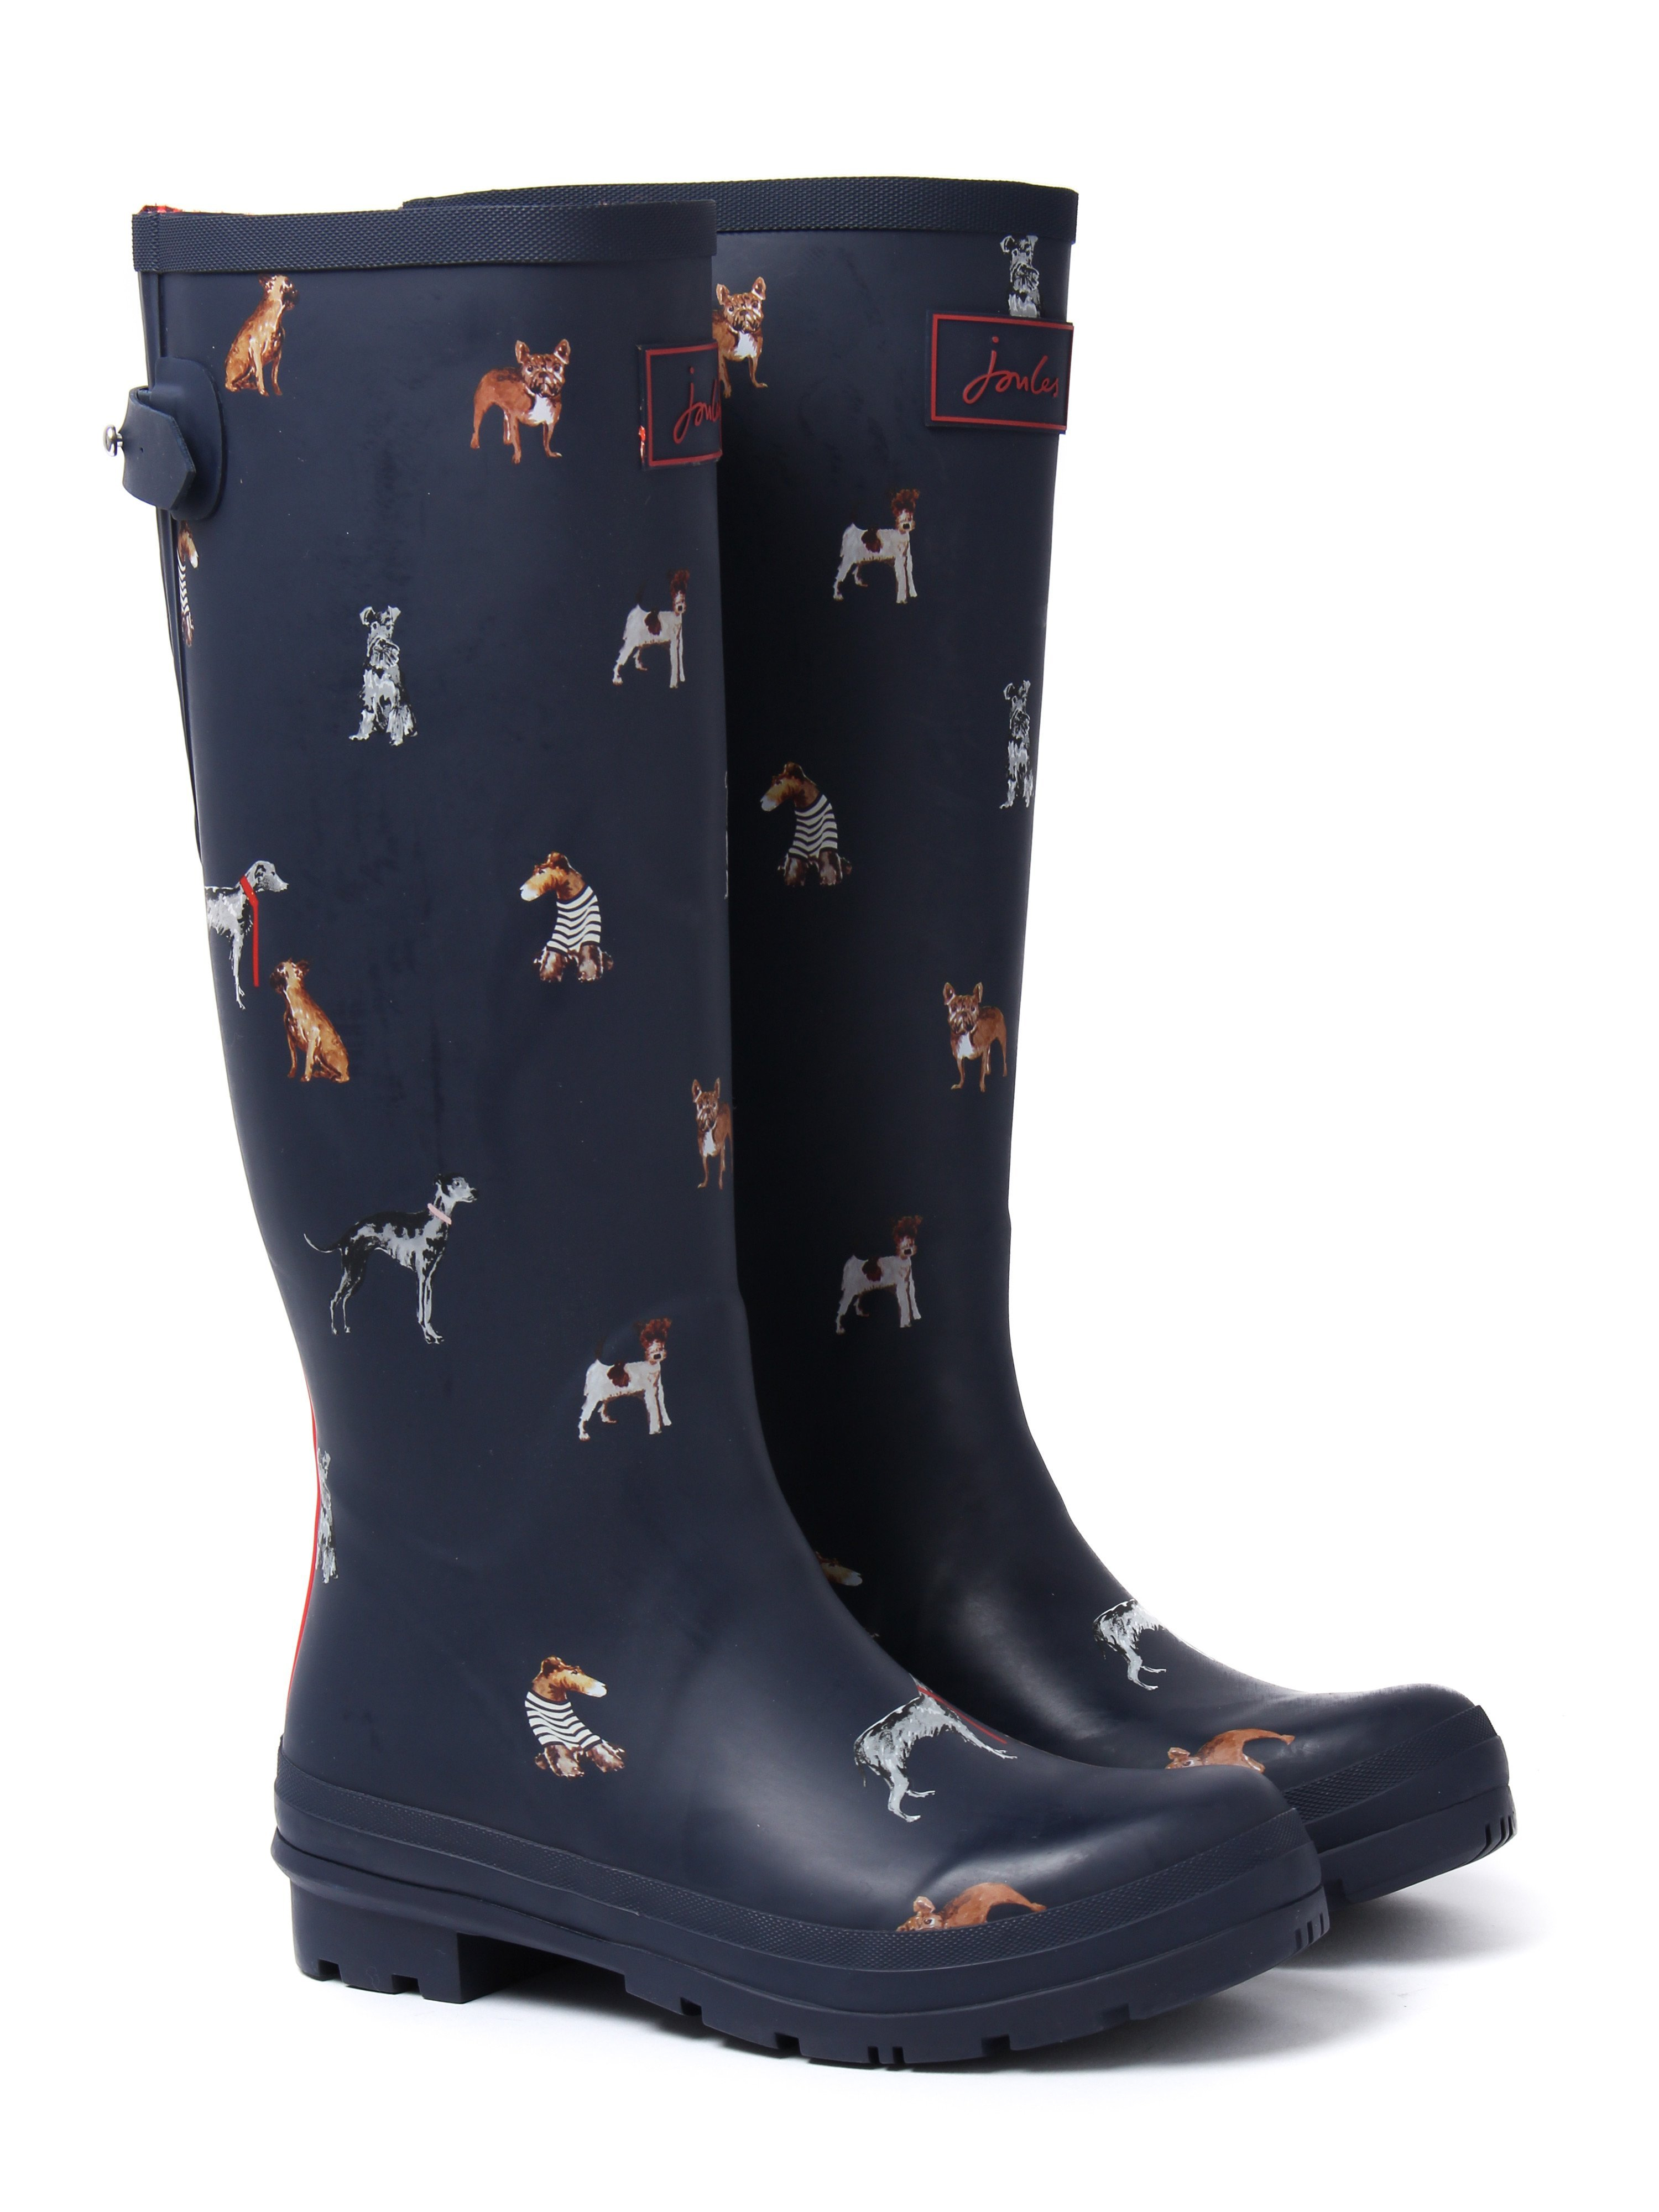 Joules Women's Adjusta Dog Rubber Wellington Boots - French Navy